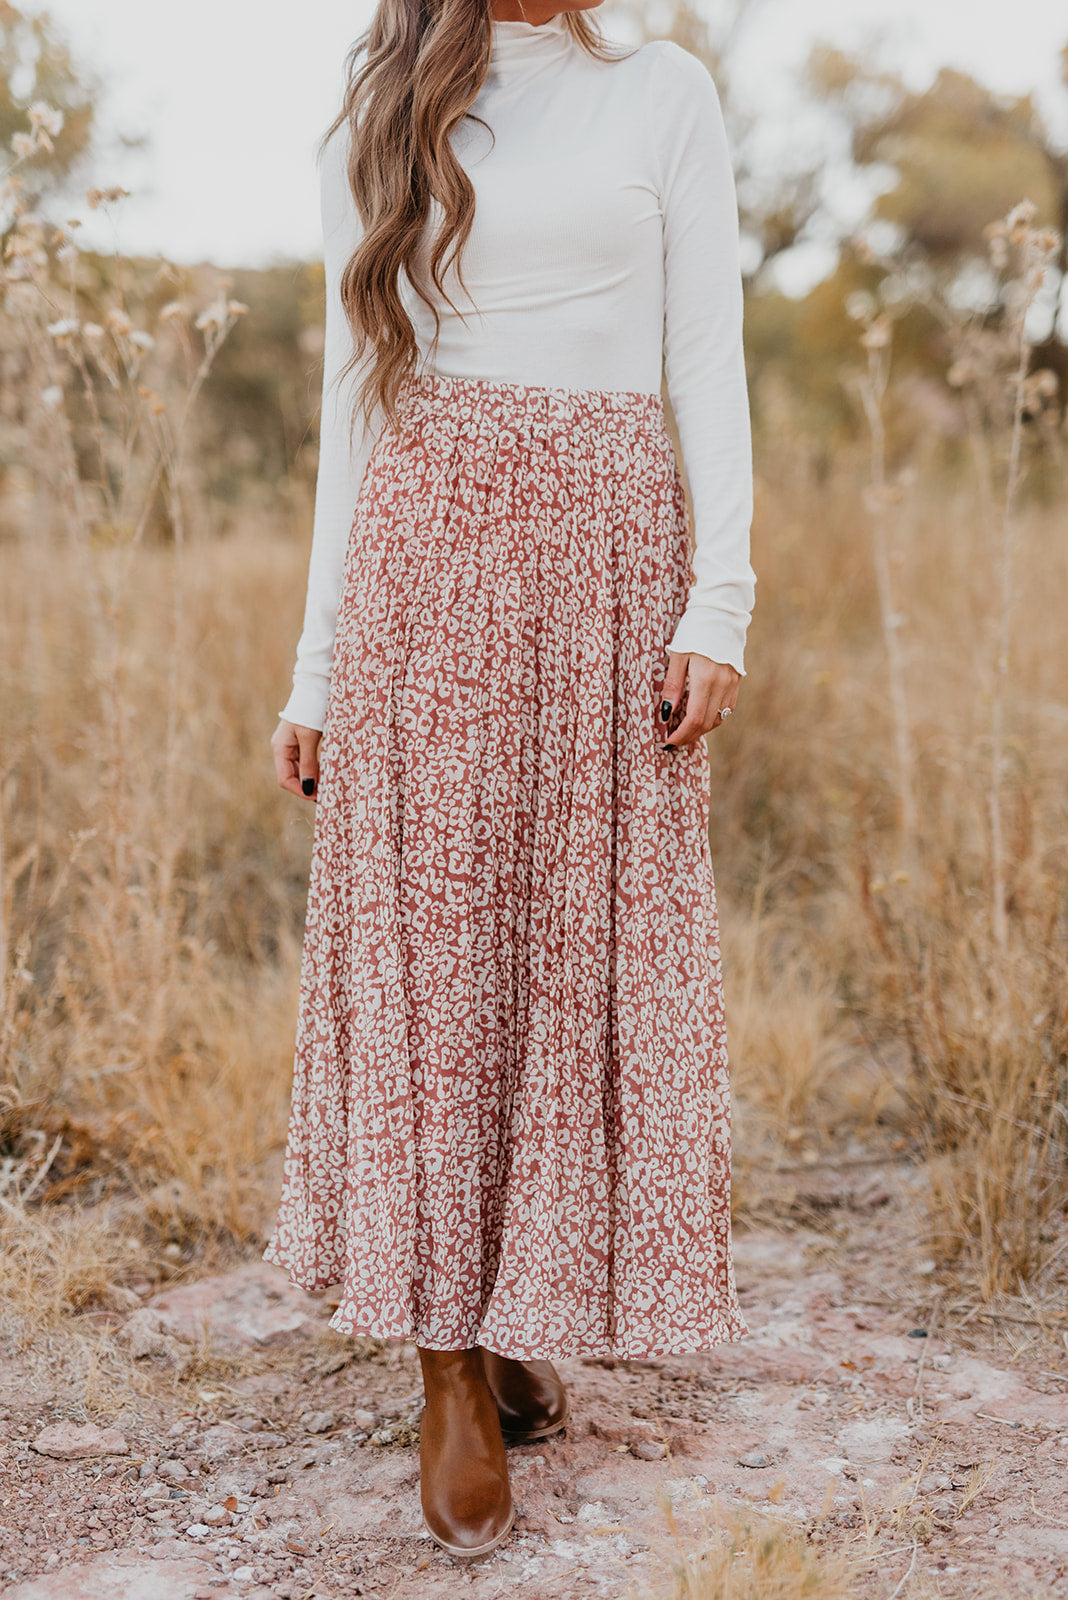 THE LILA LEOPARD PLEATED MIDI SKIRT IN DUSTY PINK